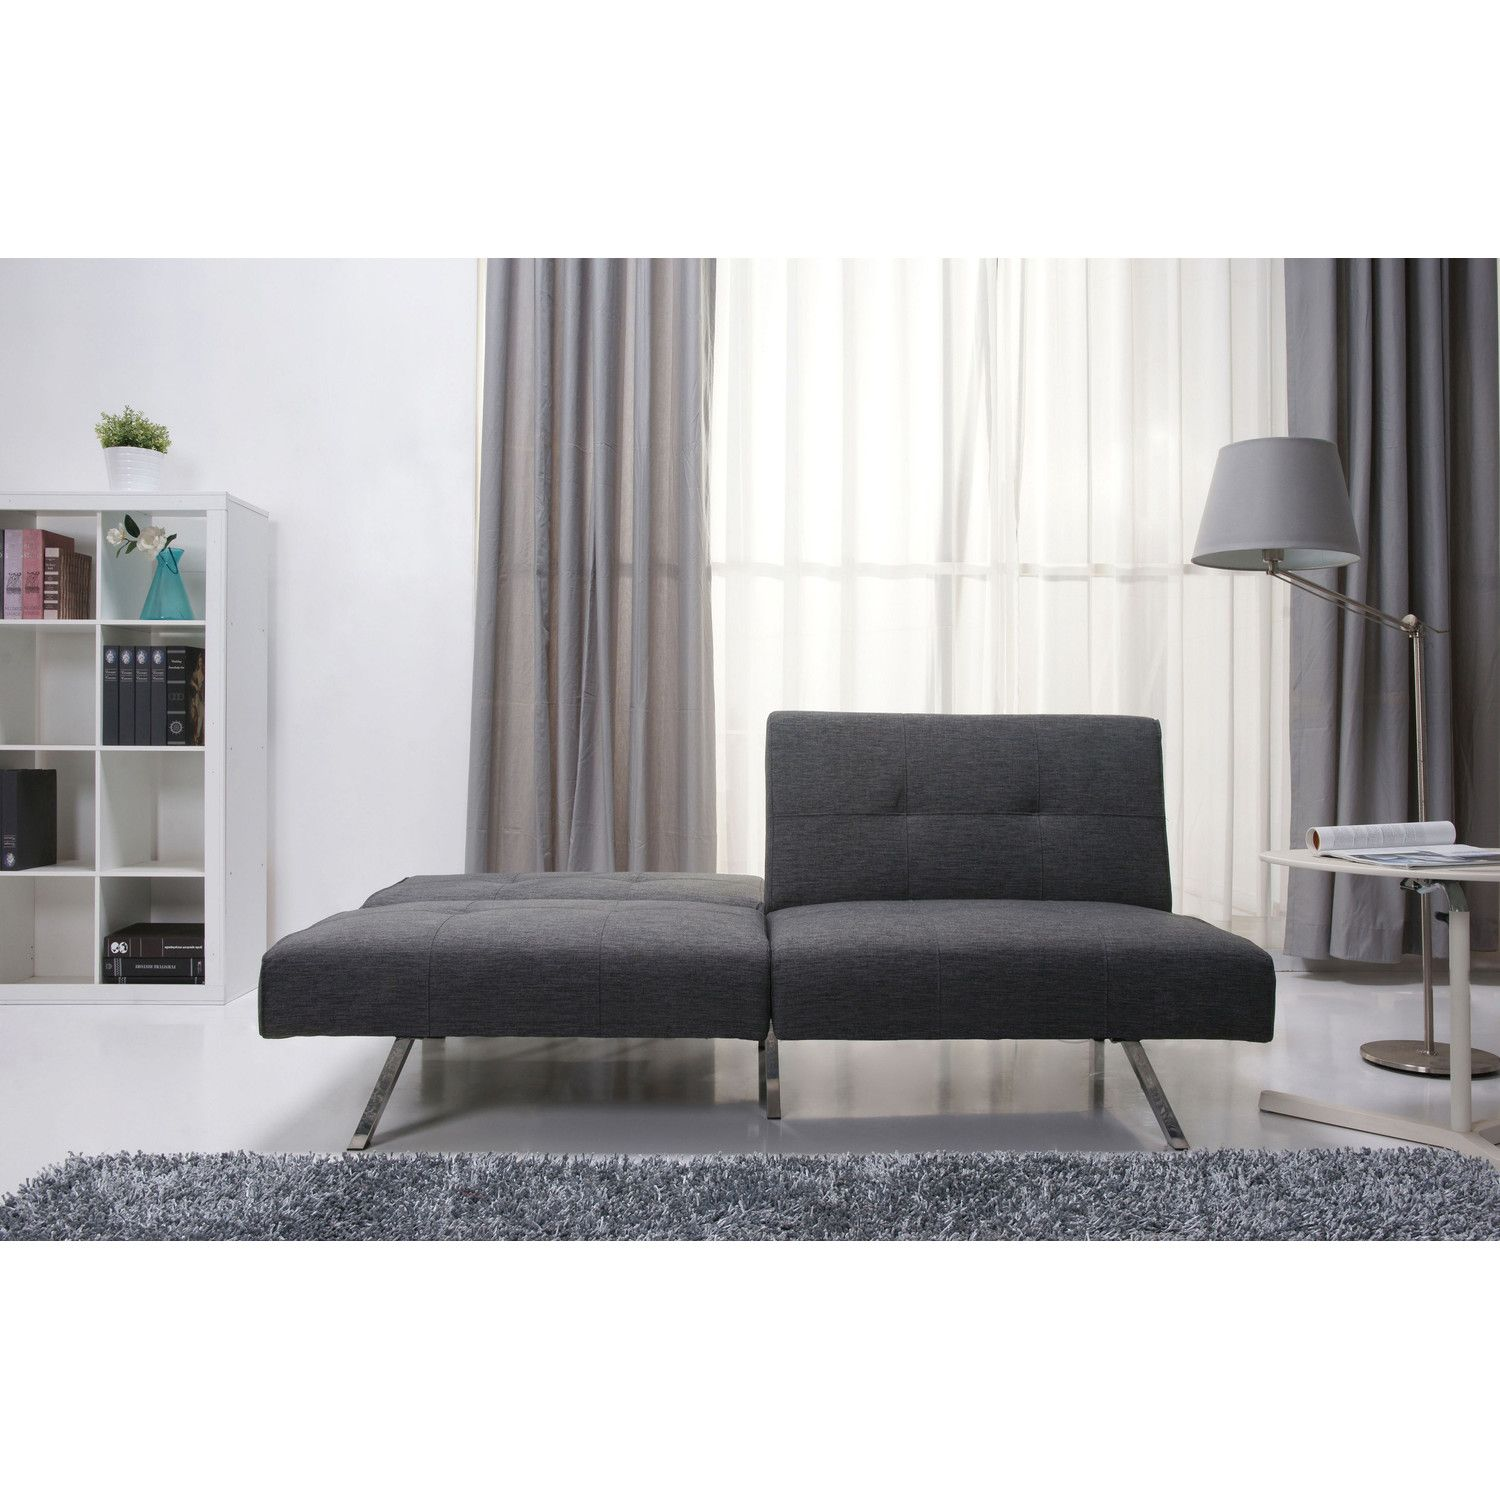 gold sparrow victorville foldable futon sofa bed $289 | home jawns